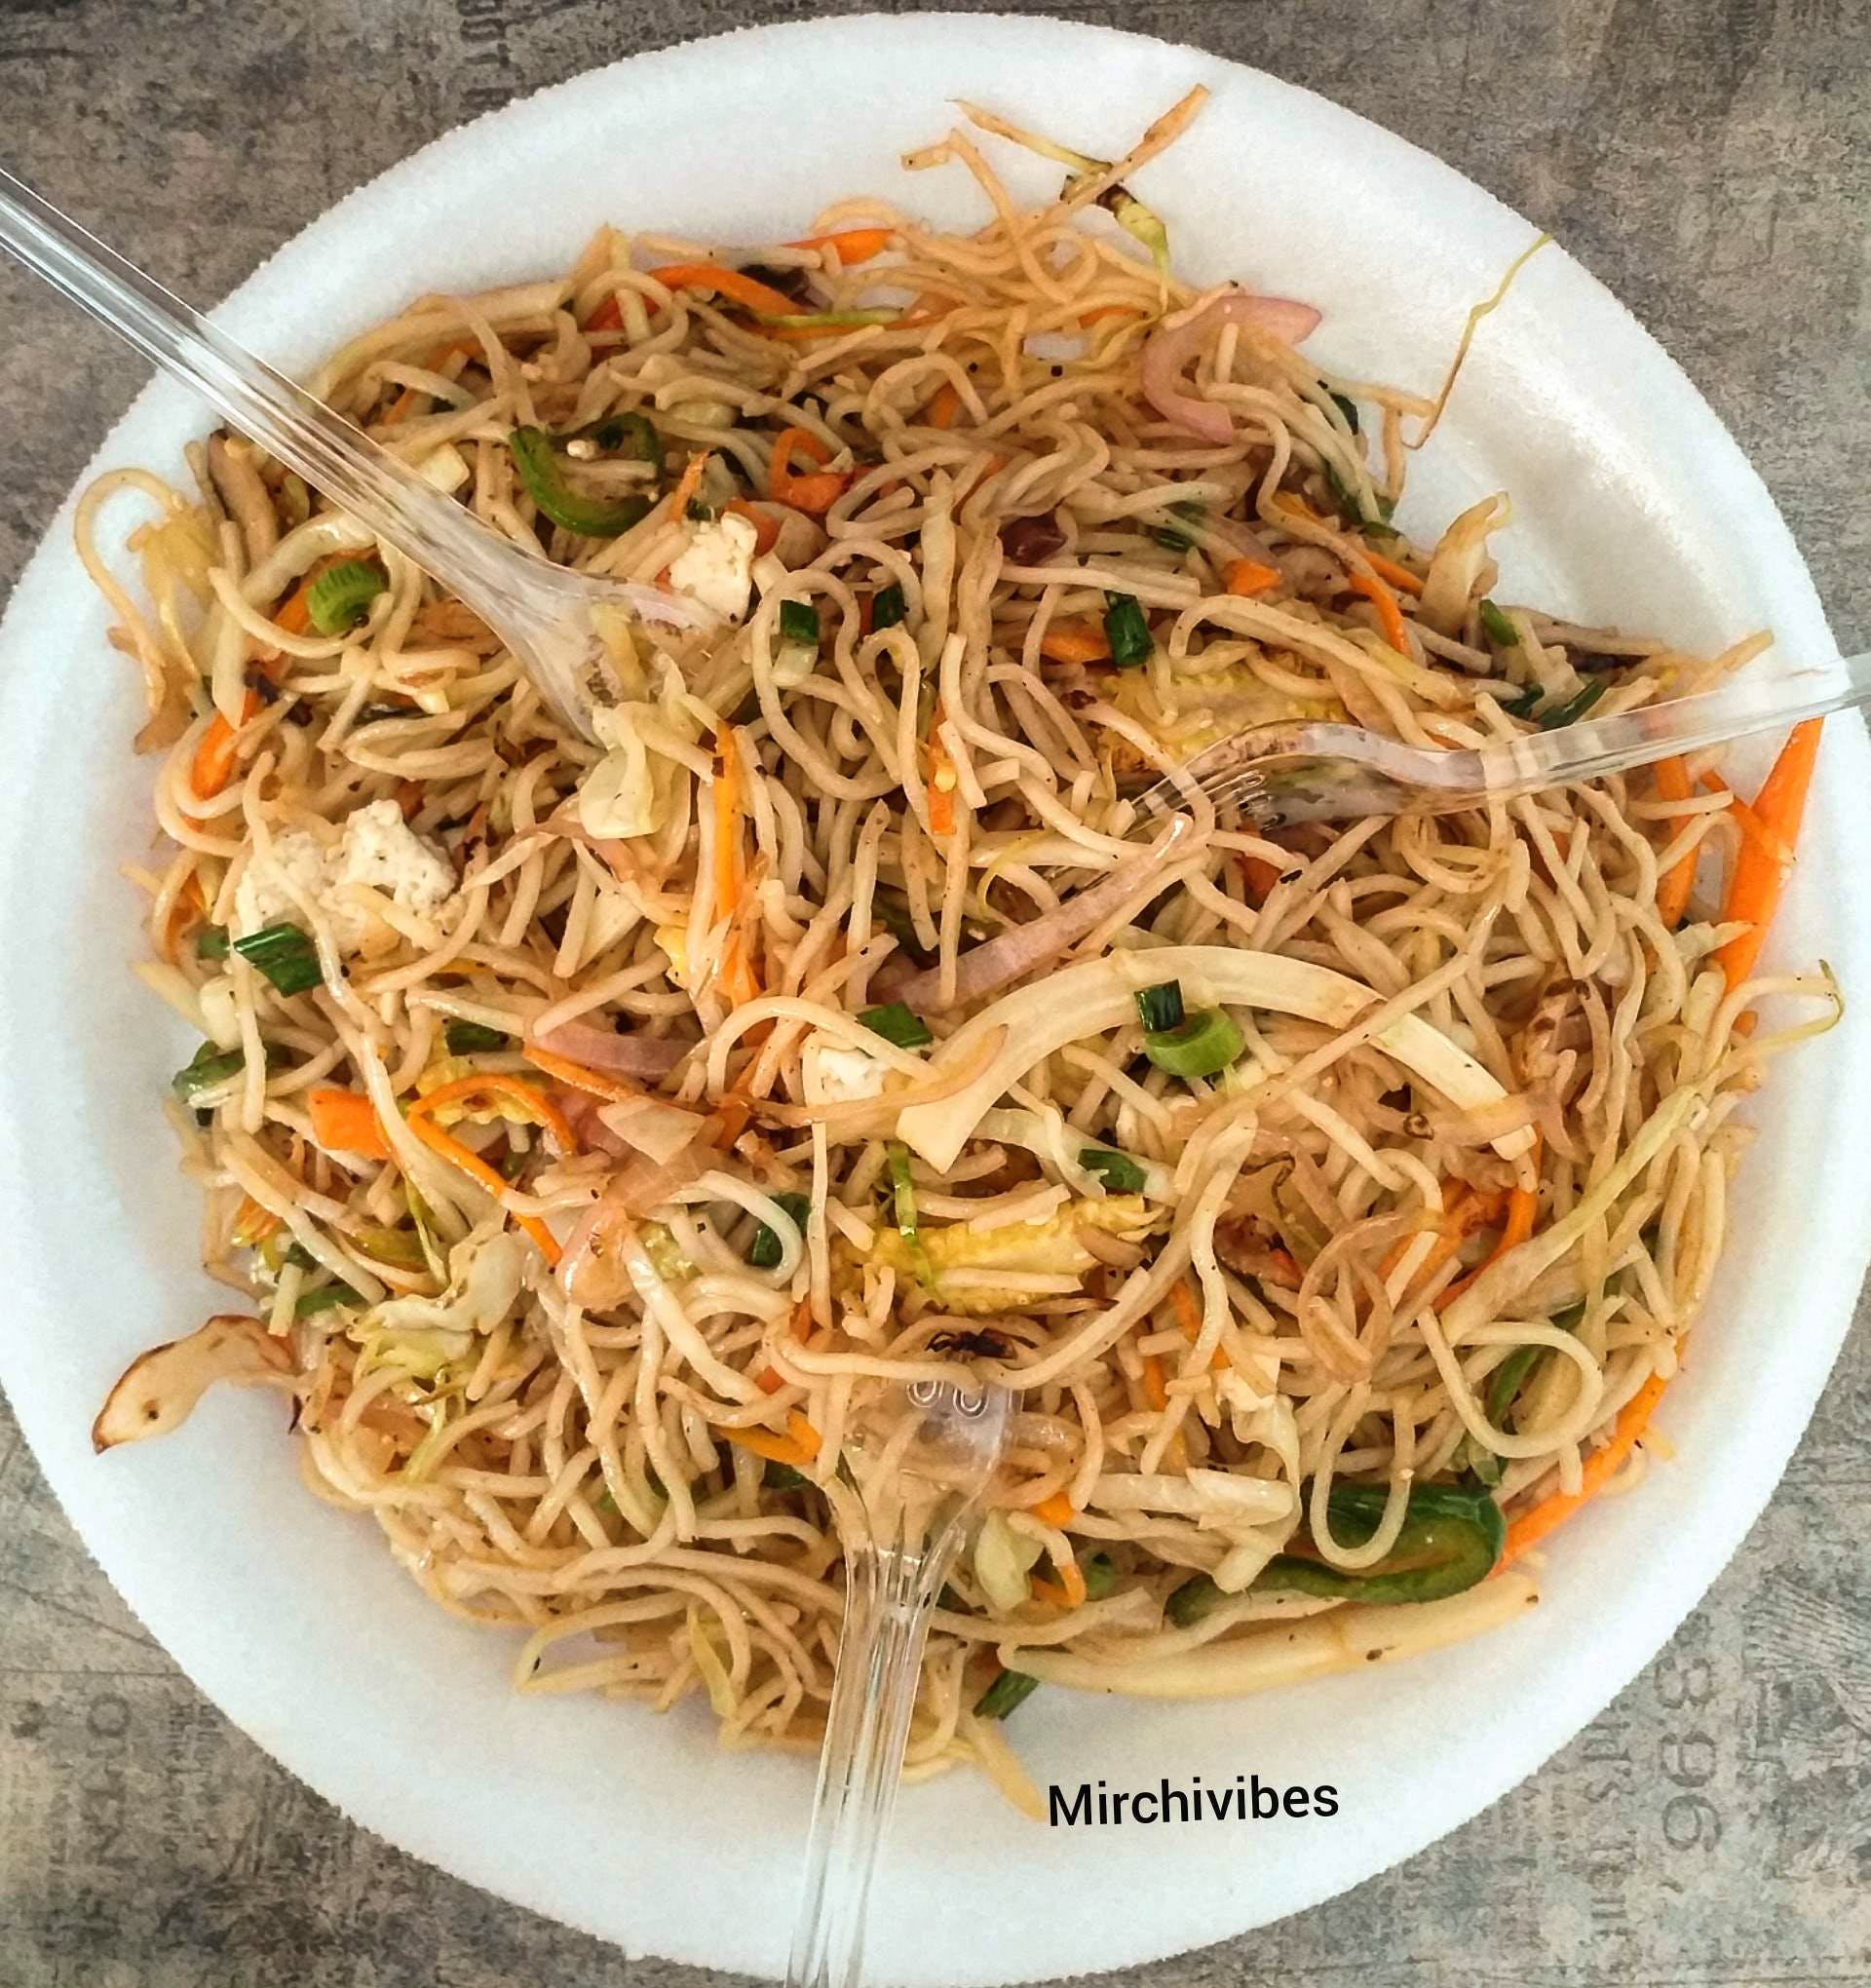 Dish,Cuisine,Food,Noodle,Chow mein,Pancit,Rice noodles,Ingredient,Spaghetti,Chinese food